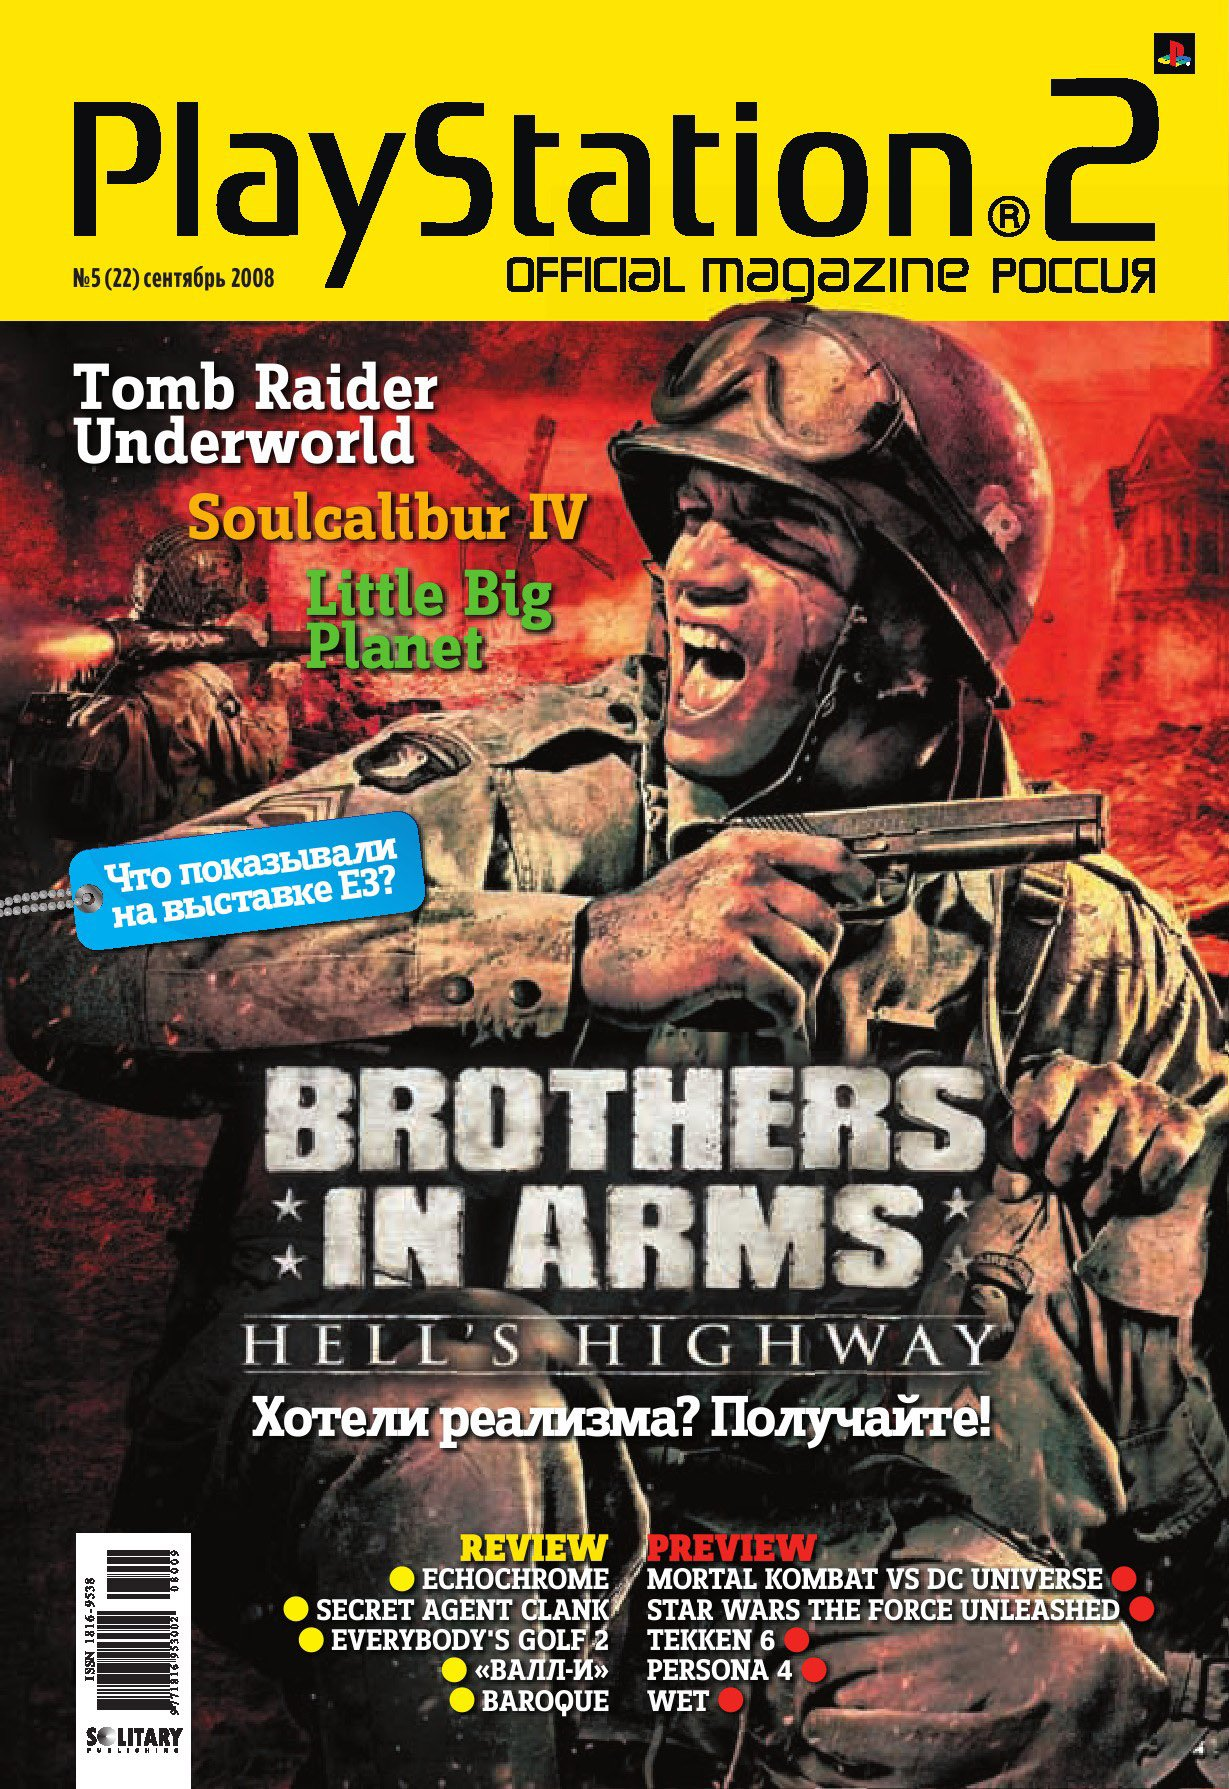 Playstation 2 Official Magazine (Russia) Issue 22 - Sept. '08